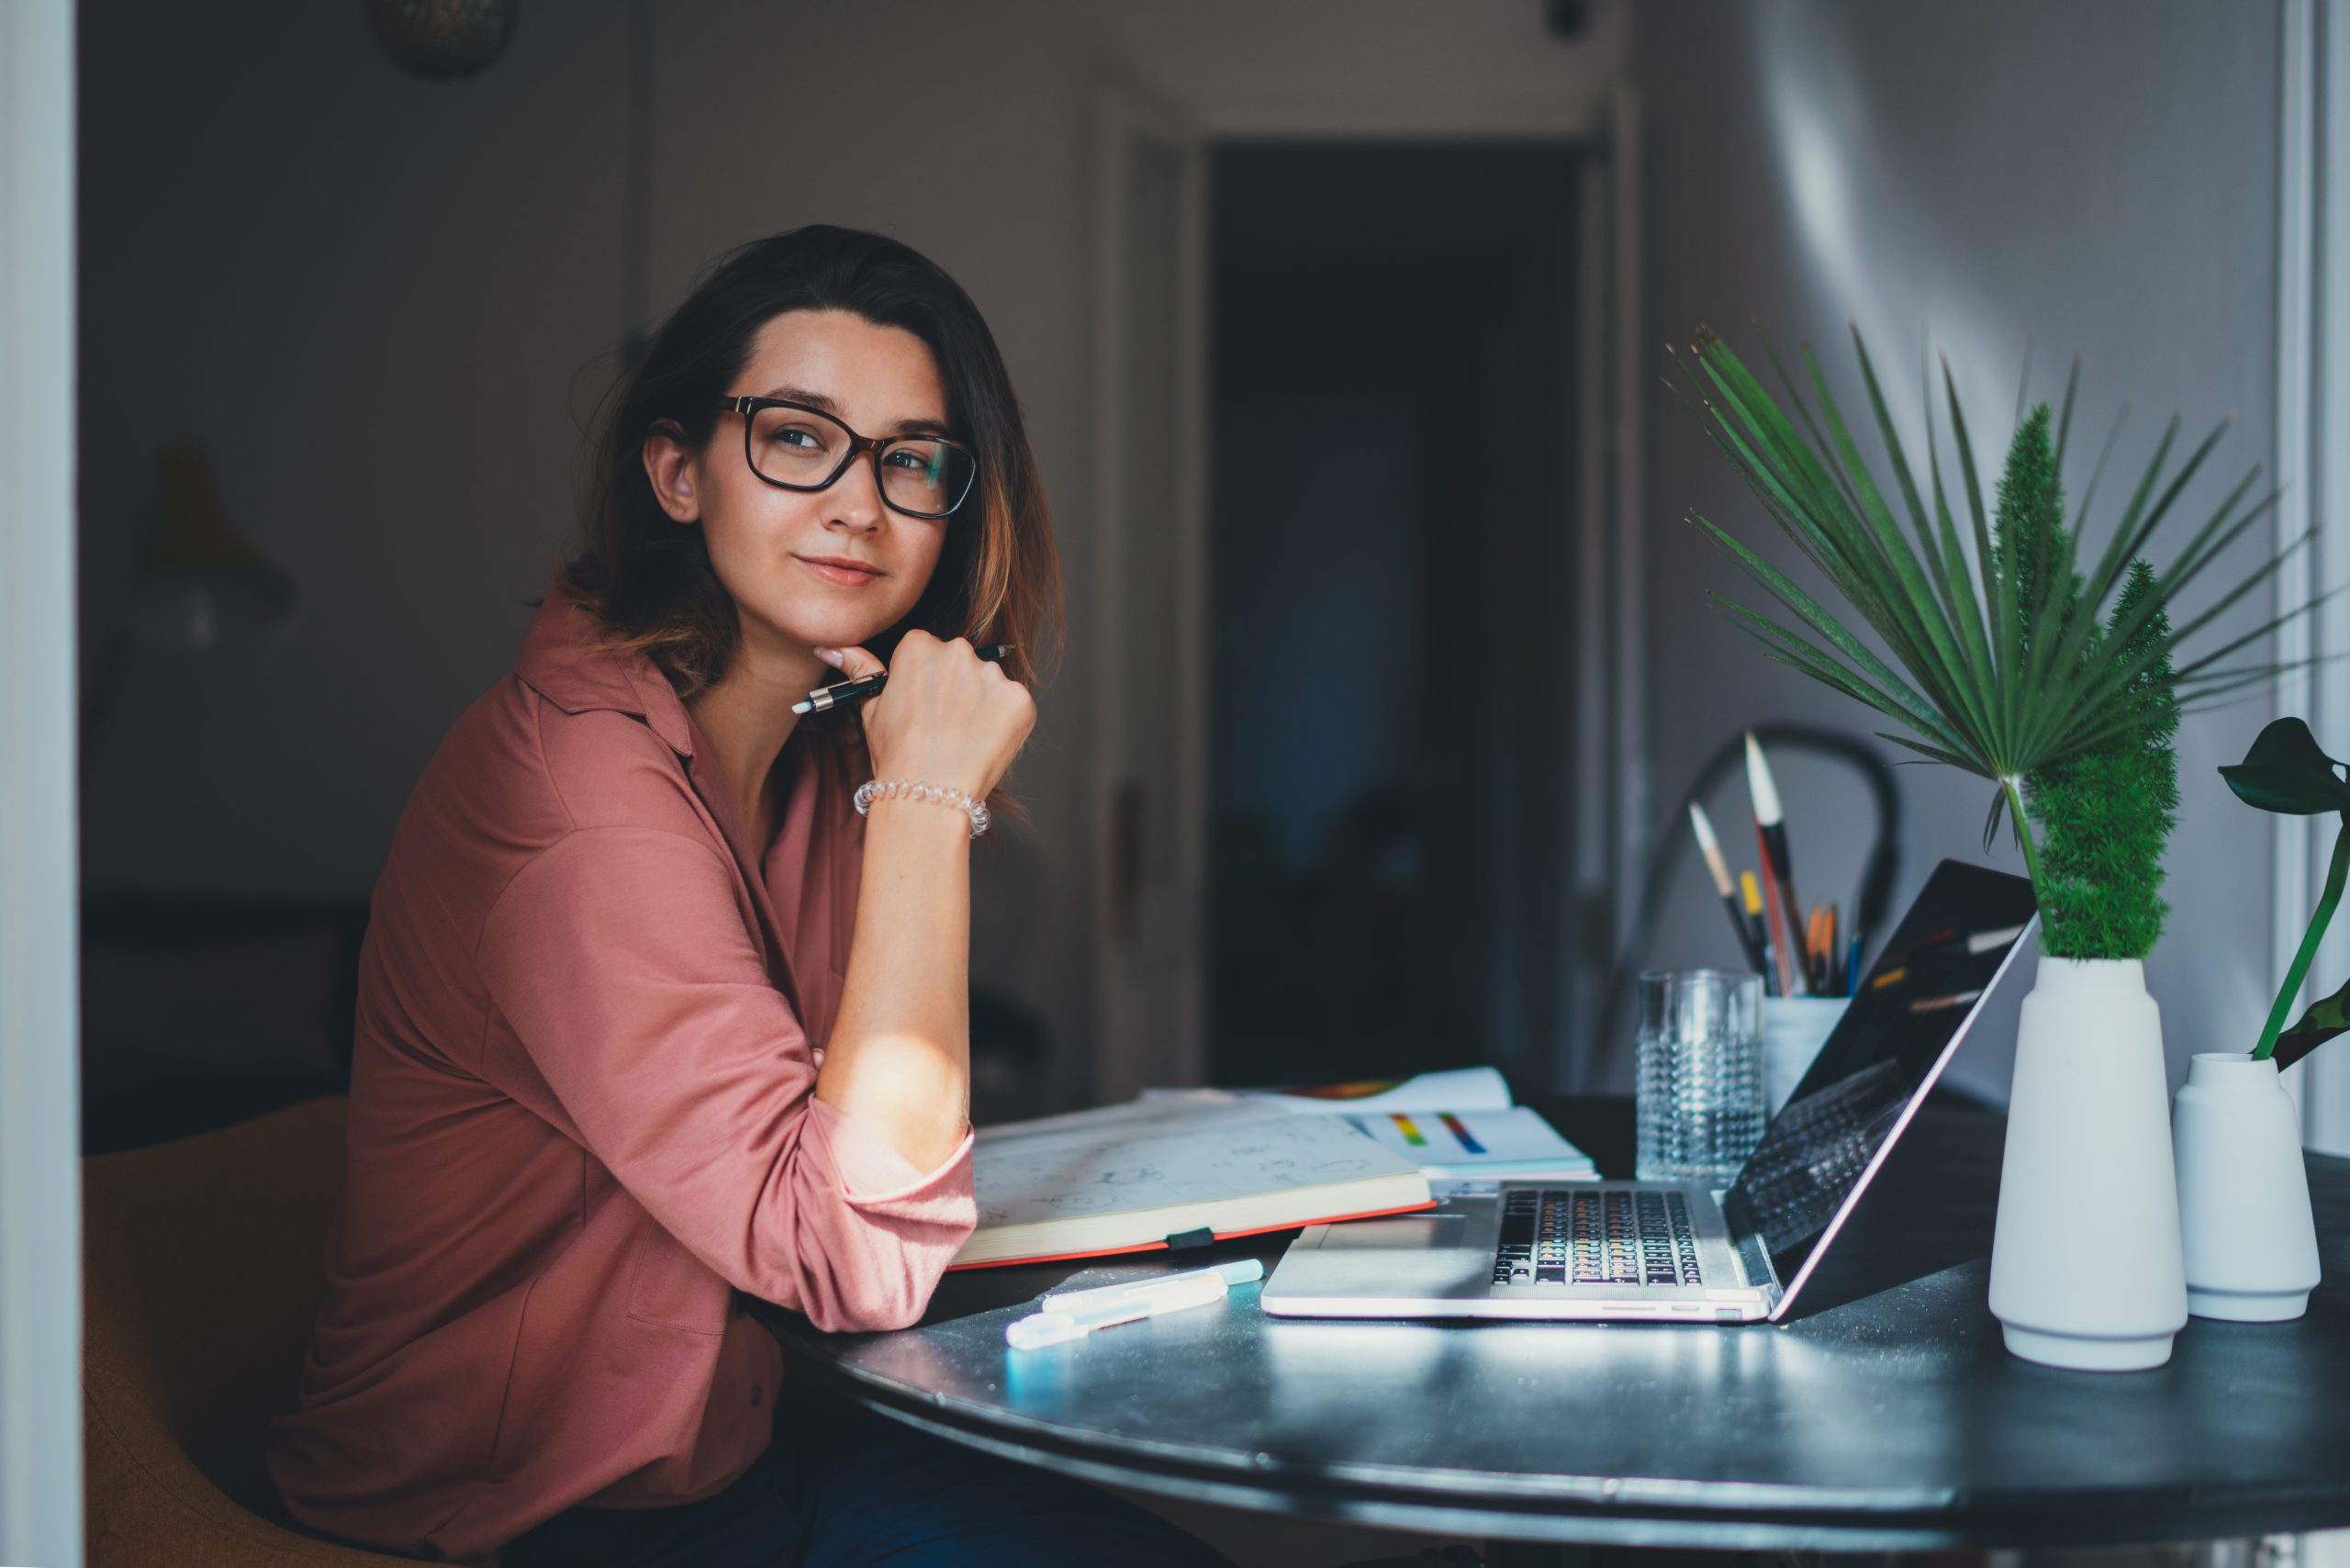 Lady at deskptop - how long does it take to secure a nursing job